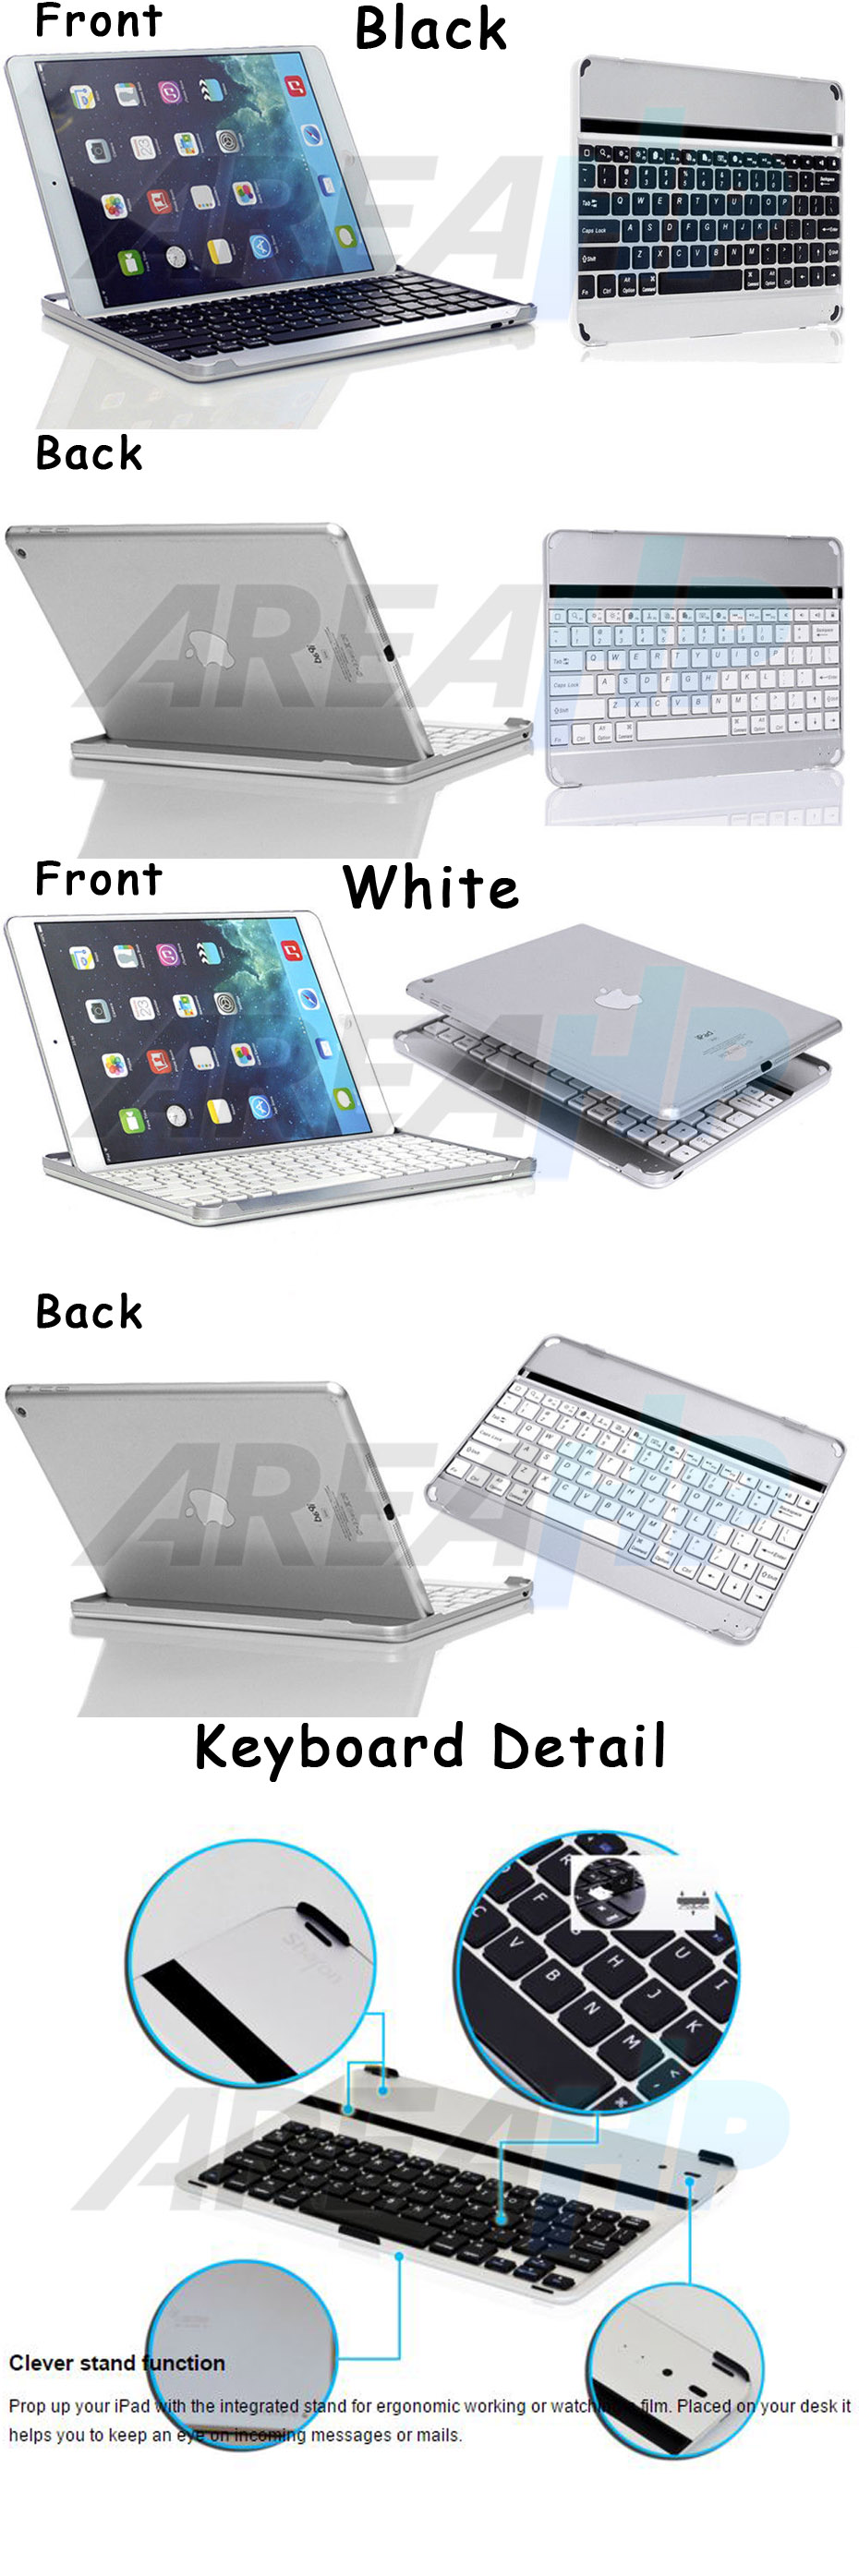 Ultra Slim Keyboard for iPad Pro 9.7 Overview